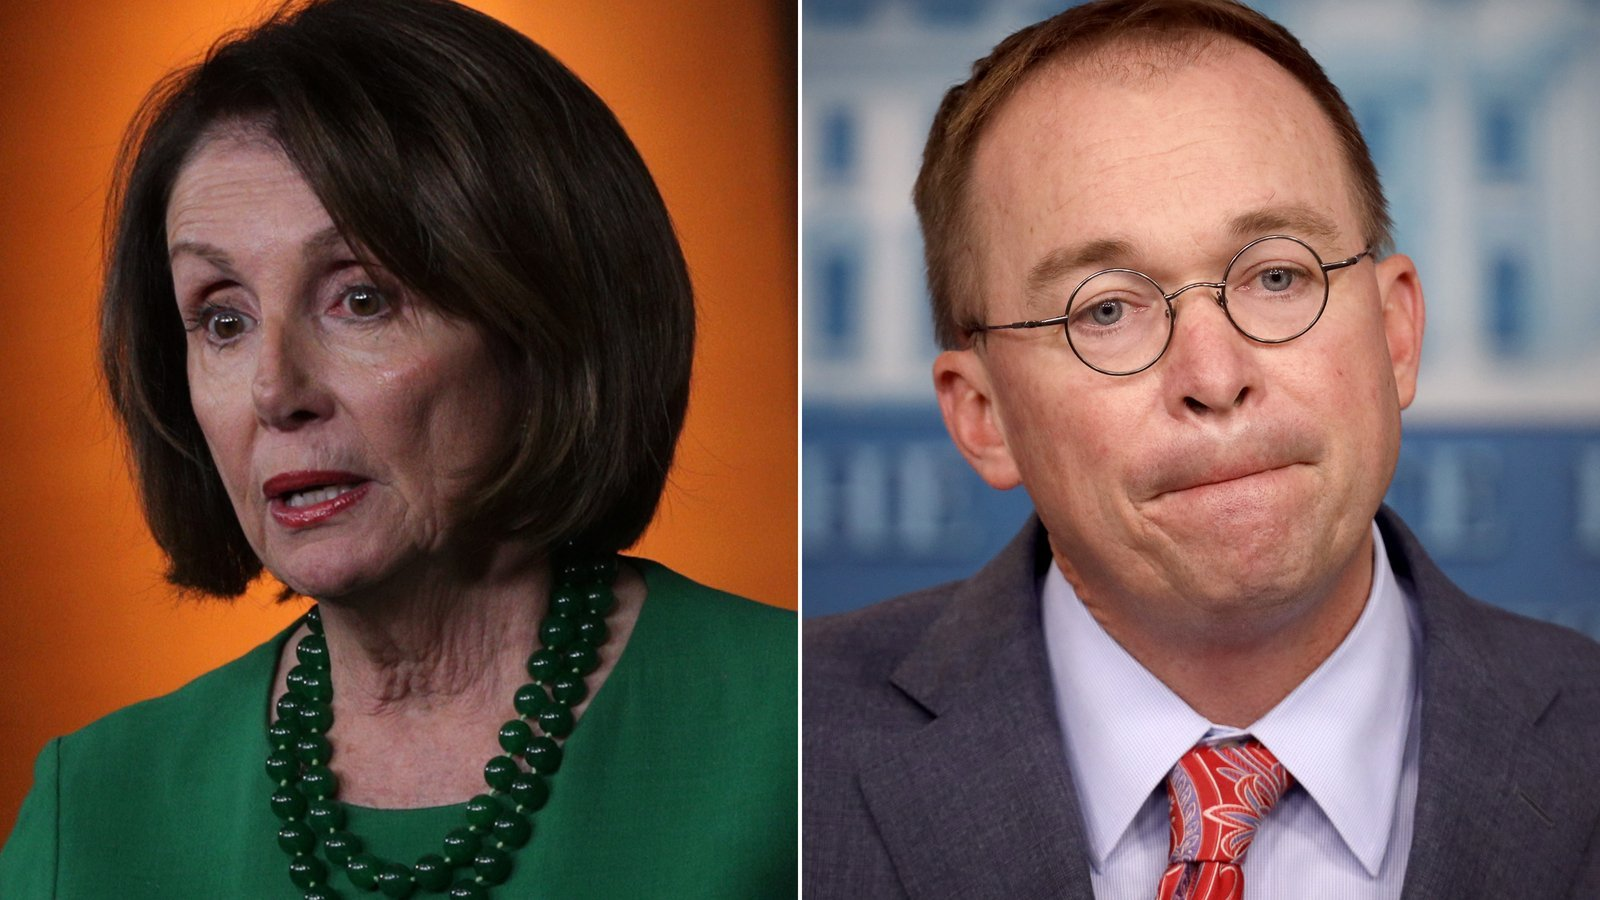 Pelosi says Mulvaney made a 'confession' to wrongdoing